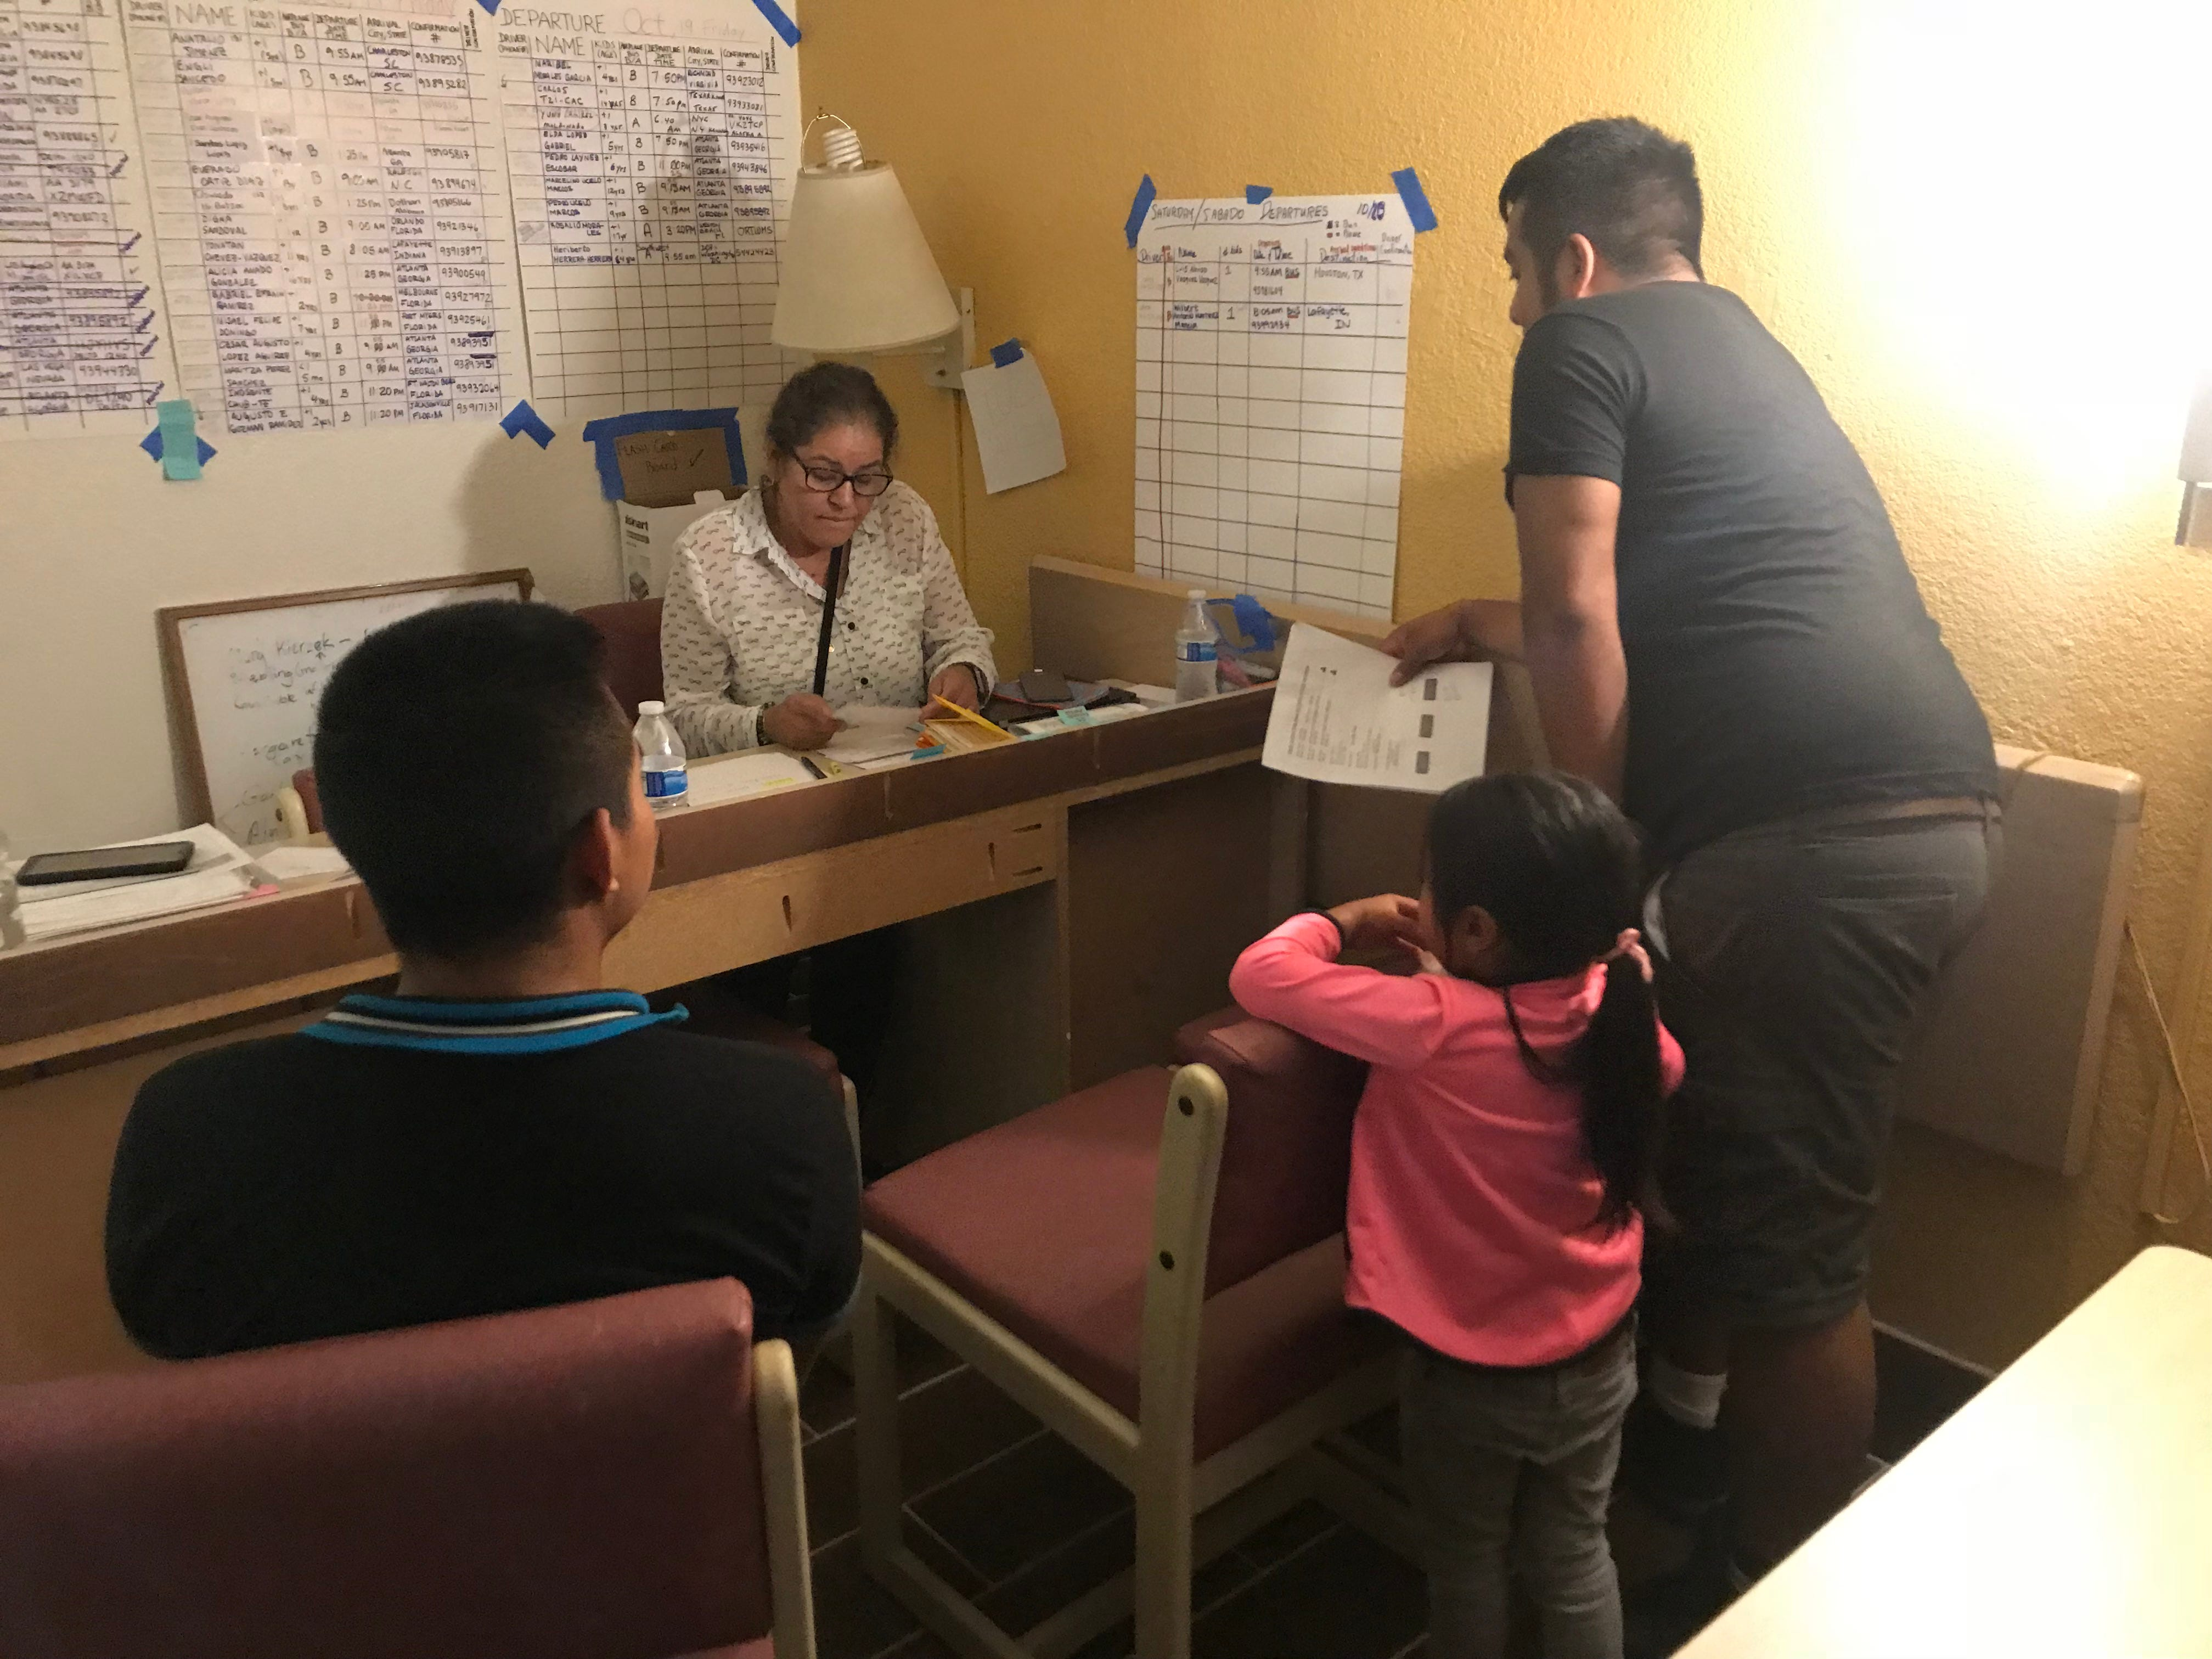 A volunteer with Catholic Community Services in Tucson helps migrants finalize travel plans after they were released from immigration custody. The families are being housed inside a motel.